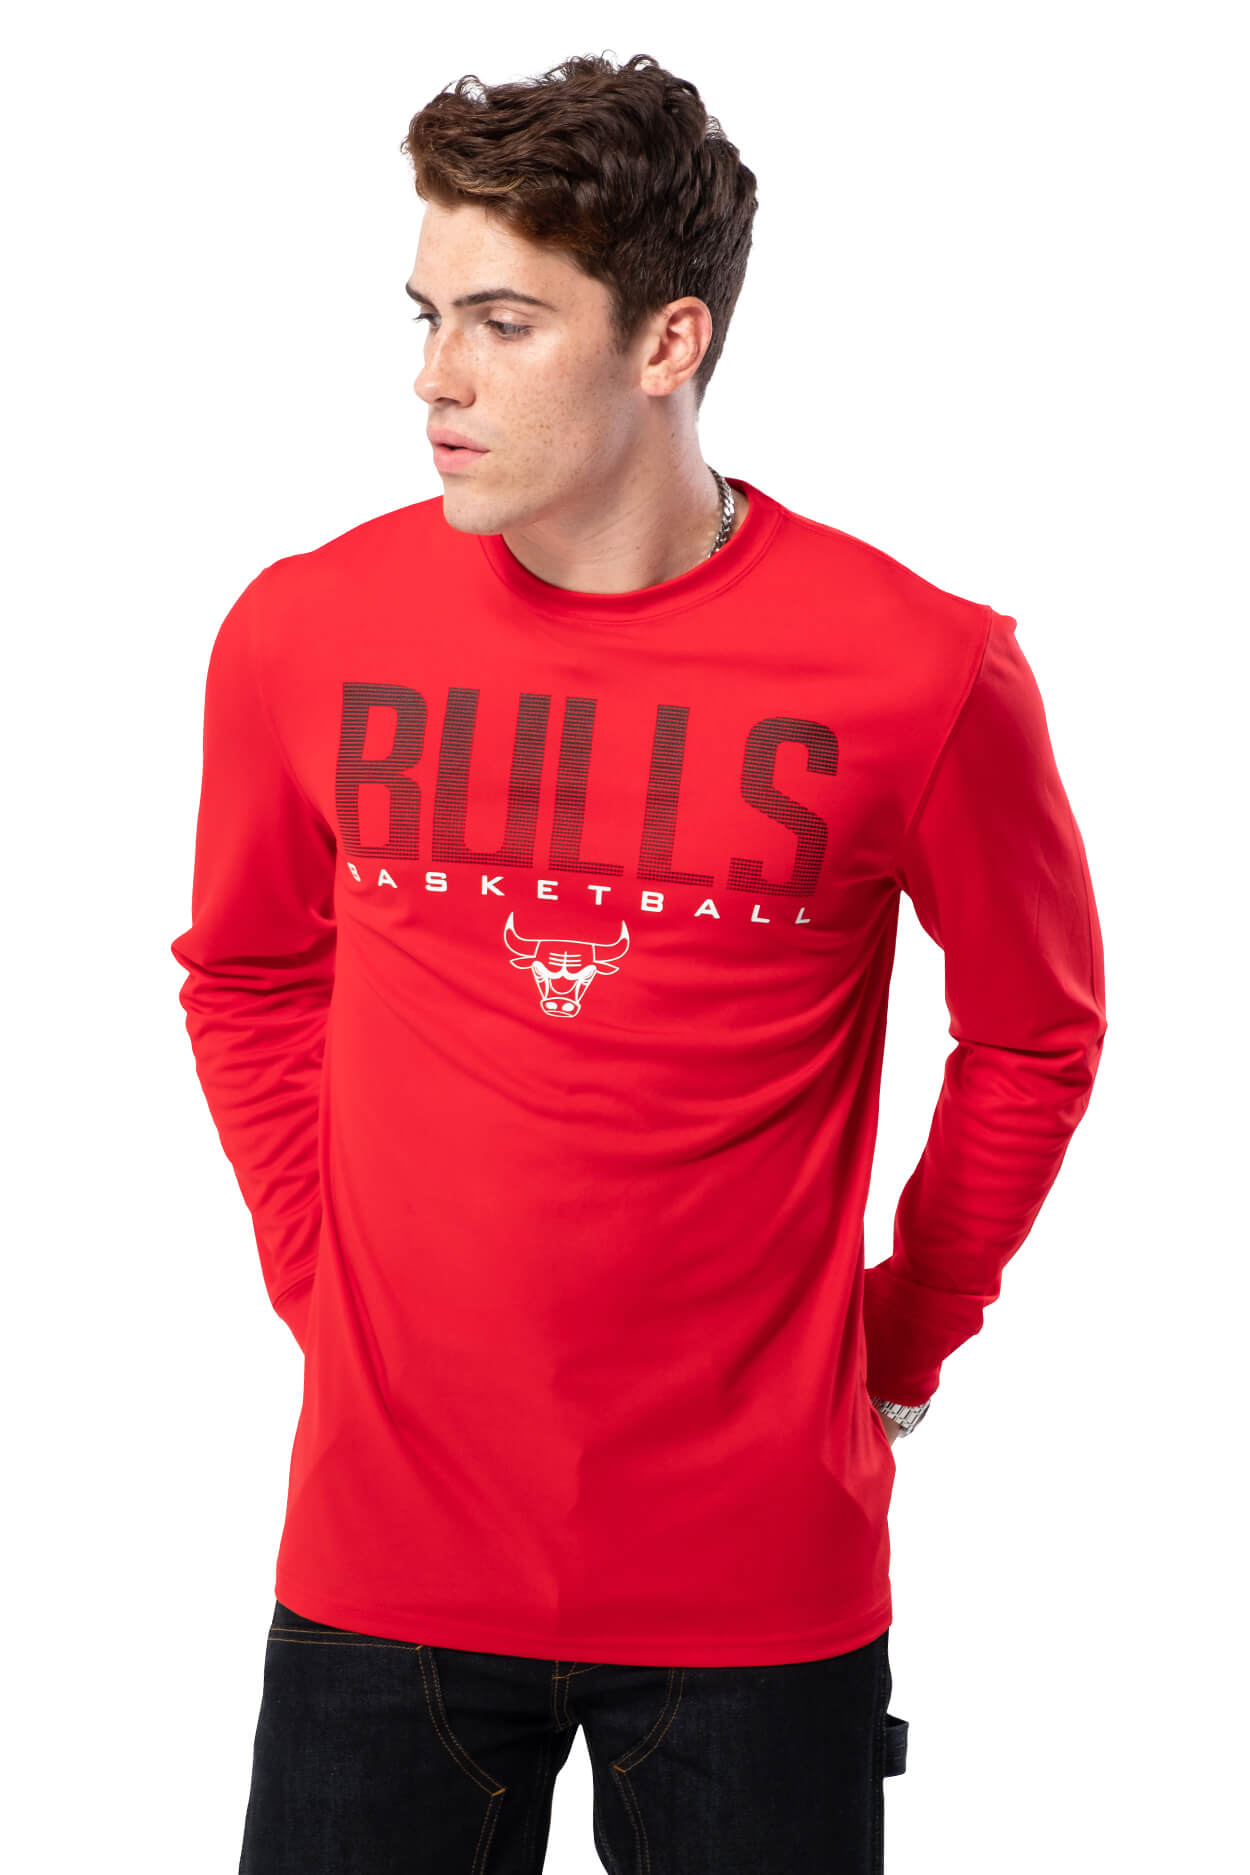 NBA Chicago Bulls Men's Long Sleeve Tee|Chicago Bulls